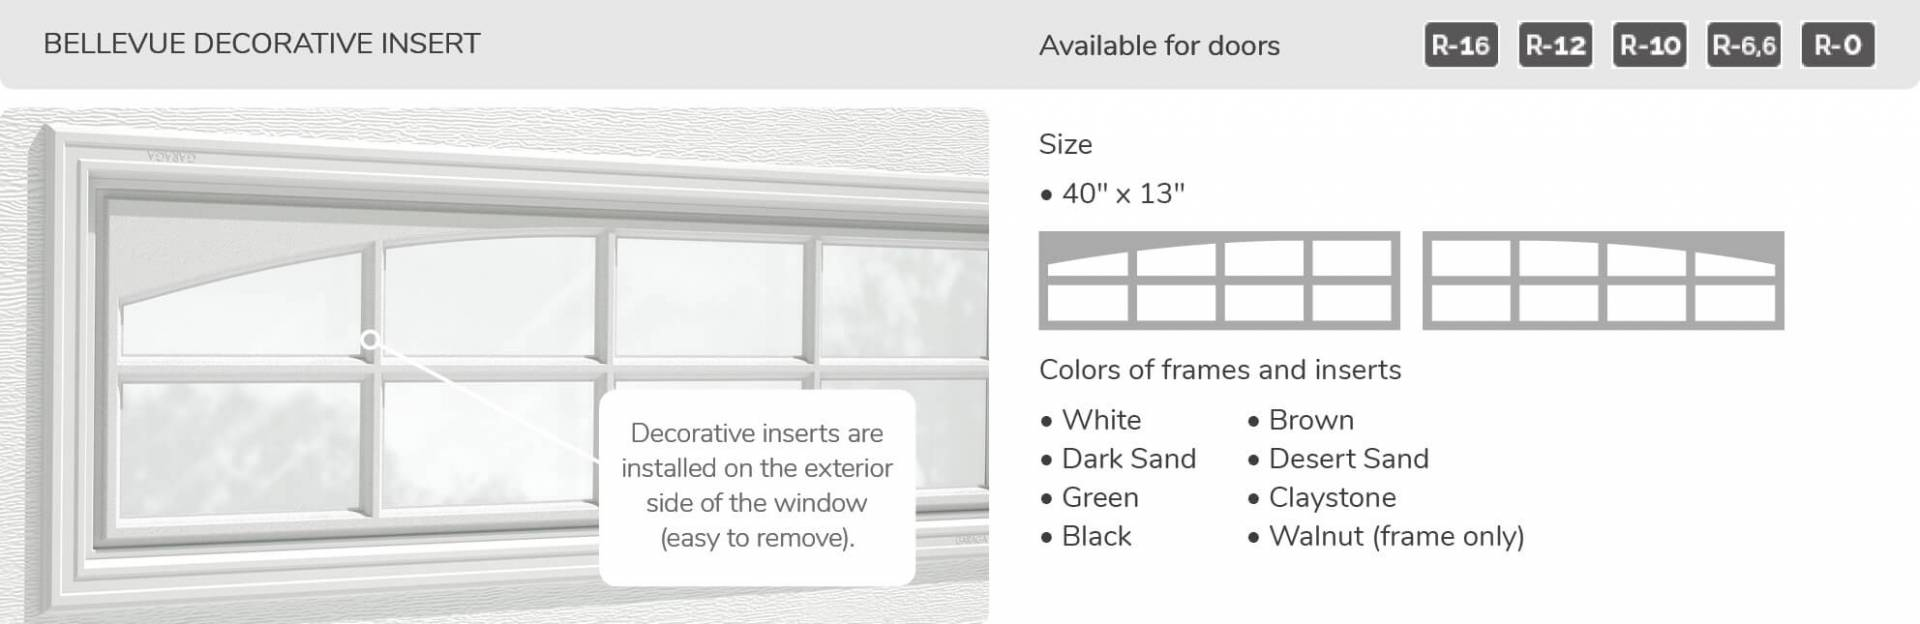 "Bellevue Decorative Insert, 40"" x 13"", available for doors R-16, R-12, R-10, R-6.6, R-0"